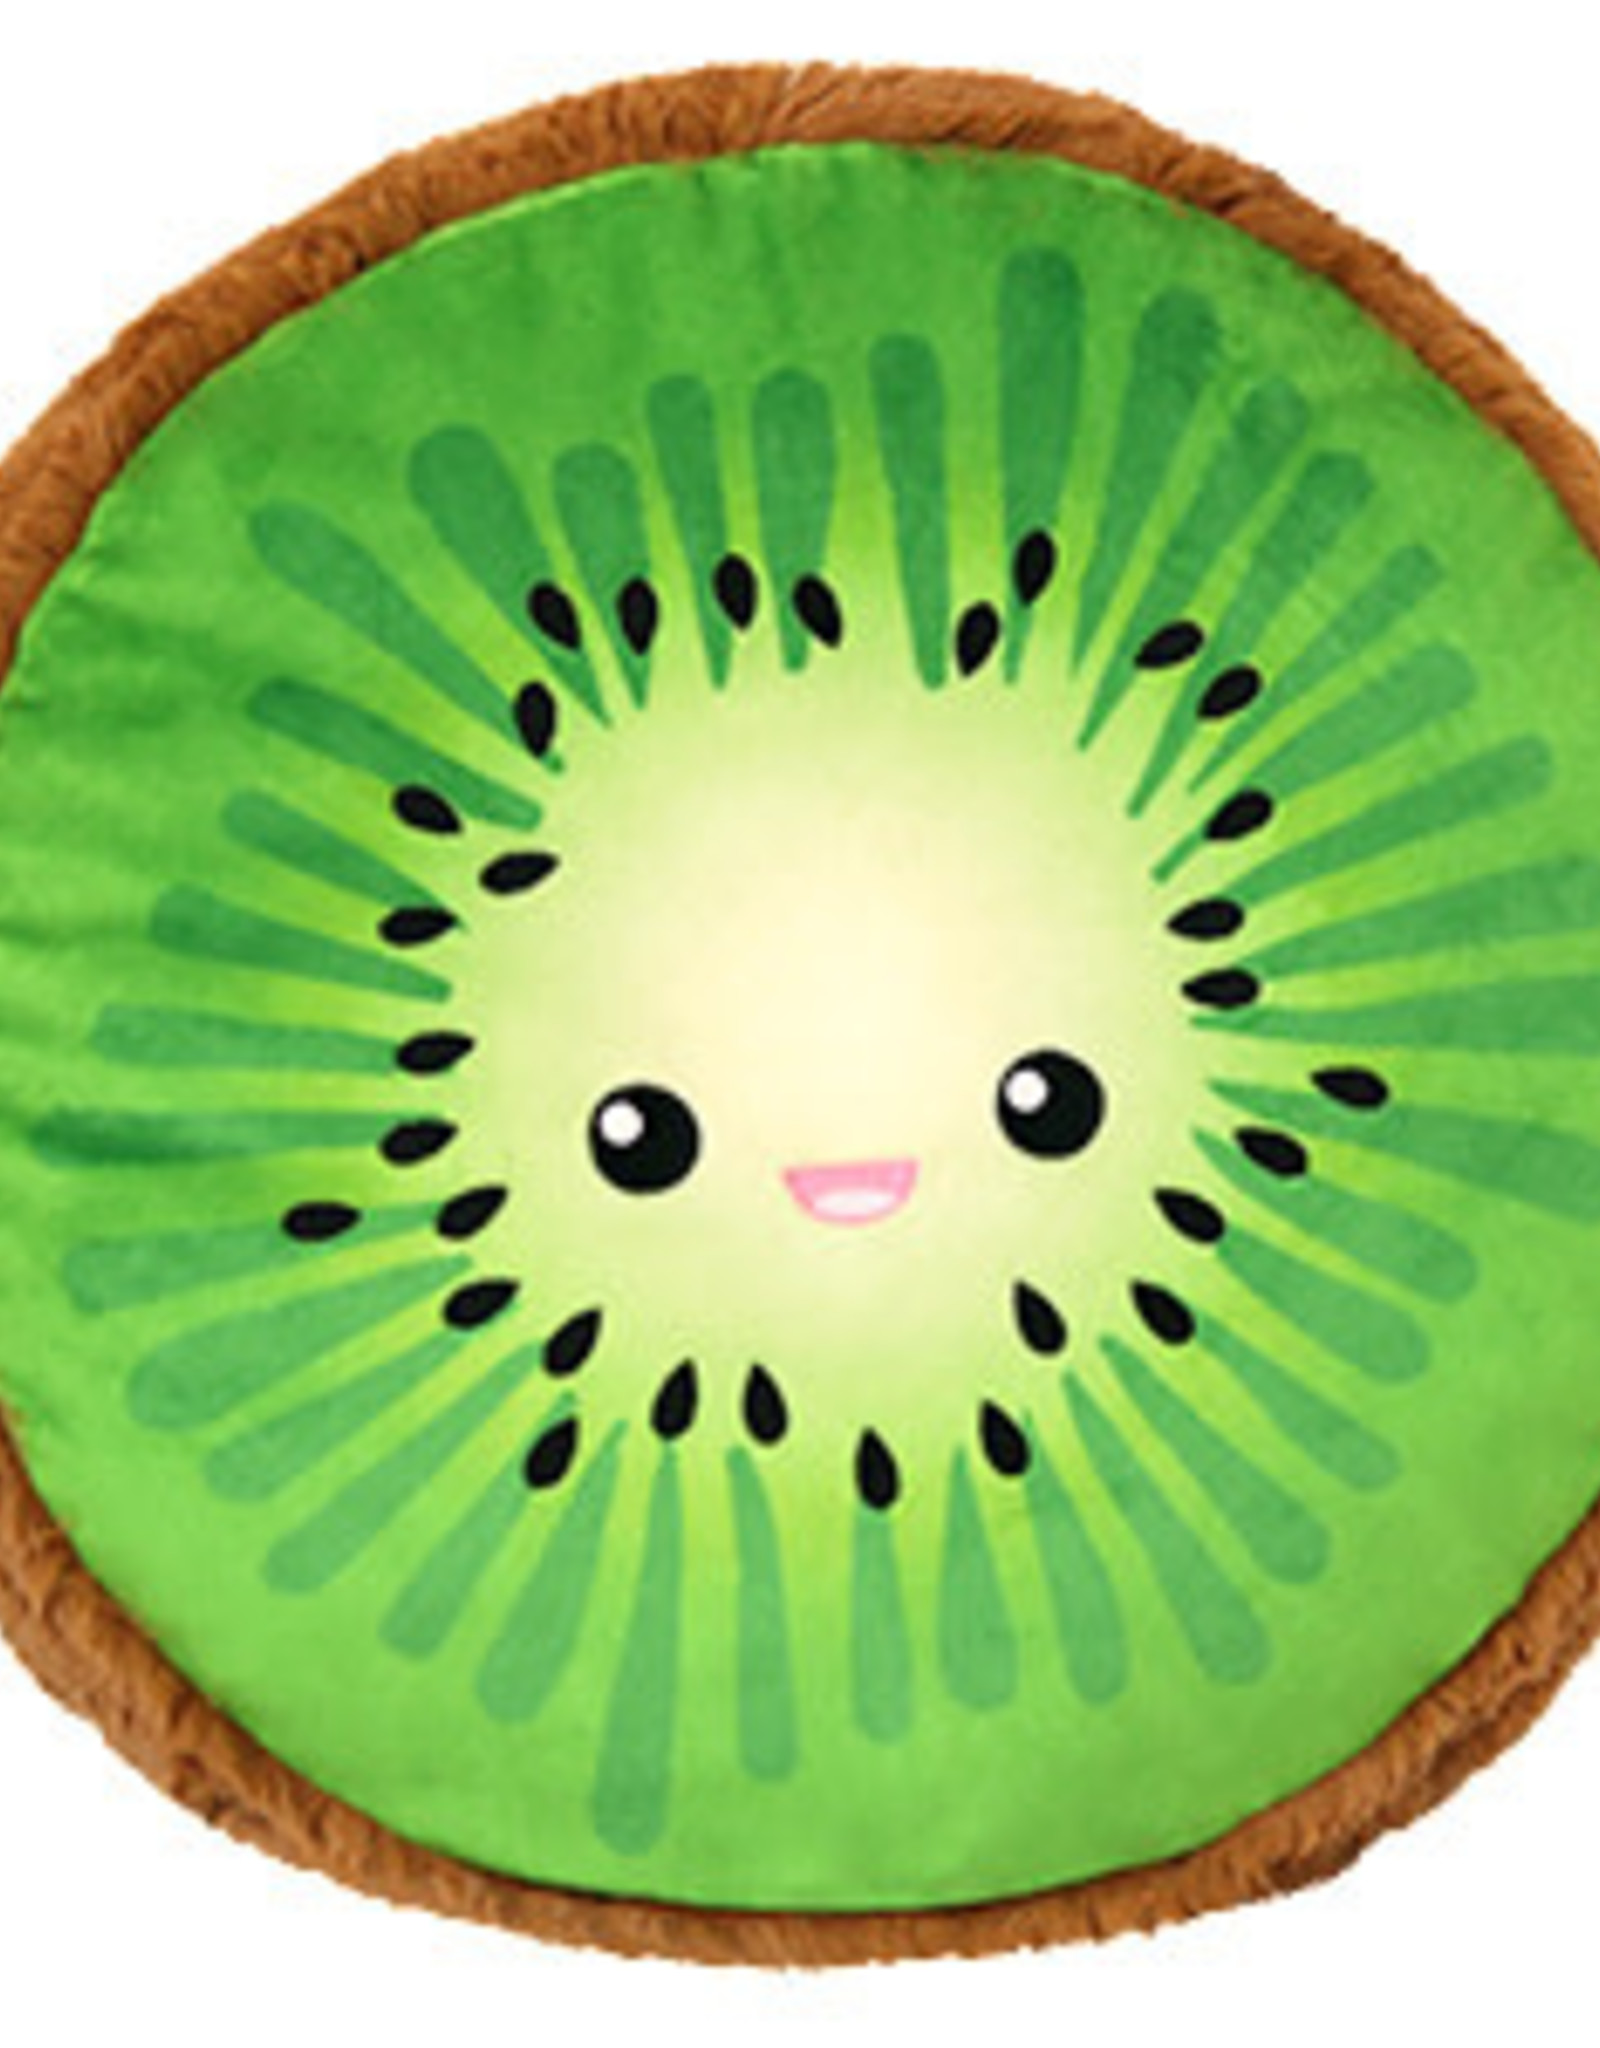 Squishable Comfort Food Kiwi